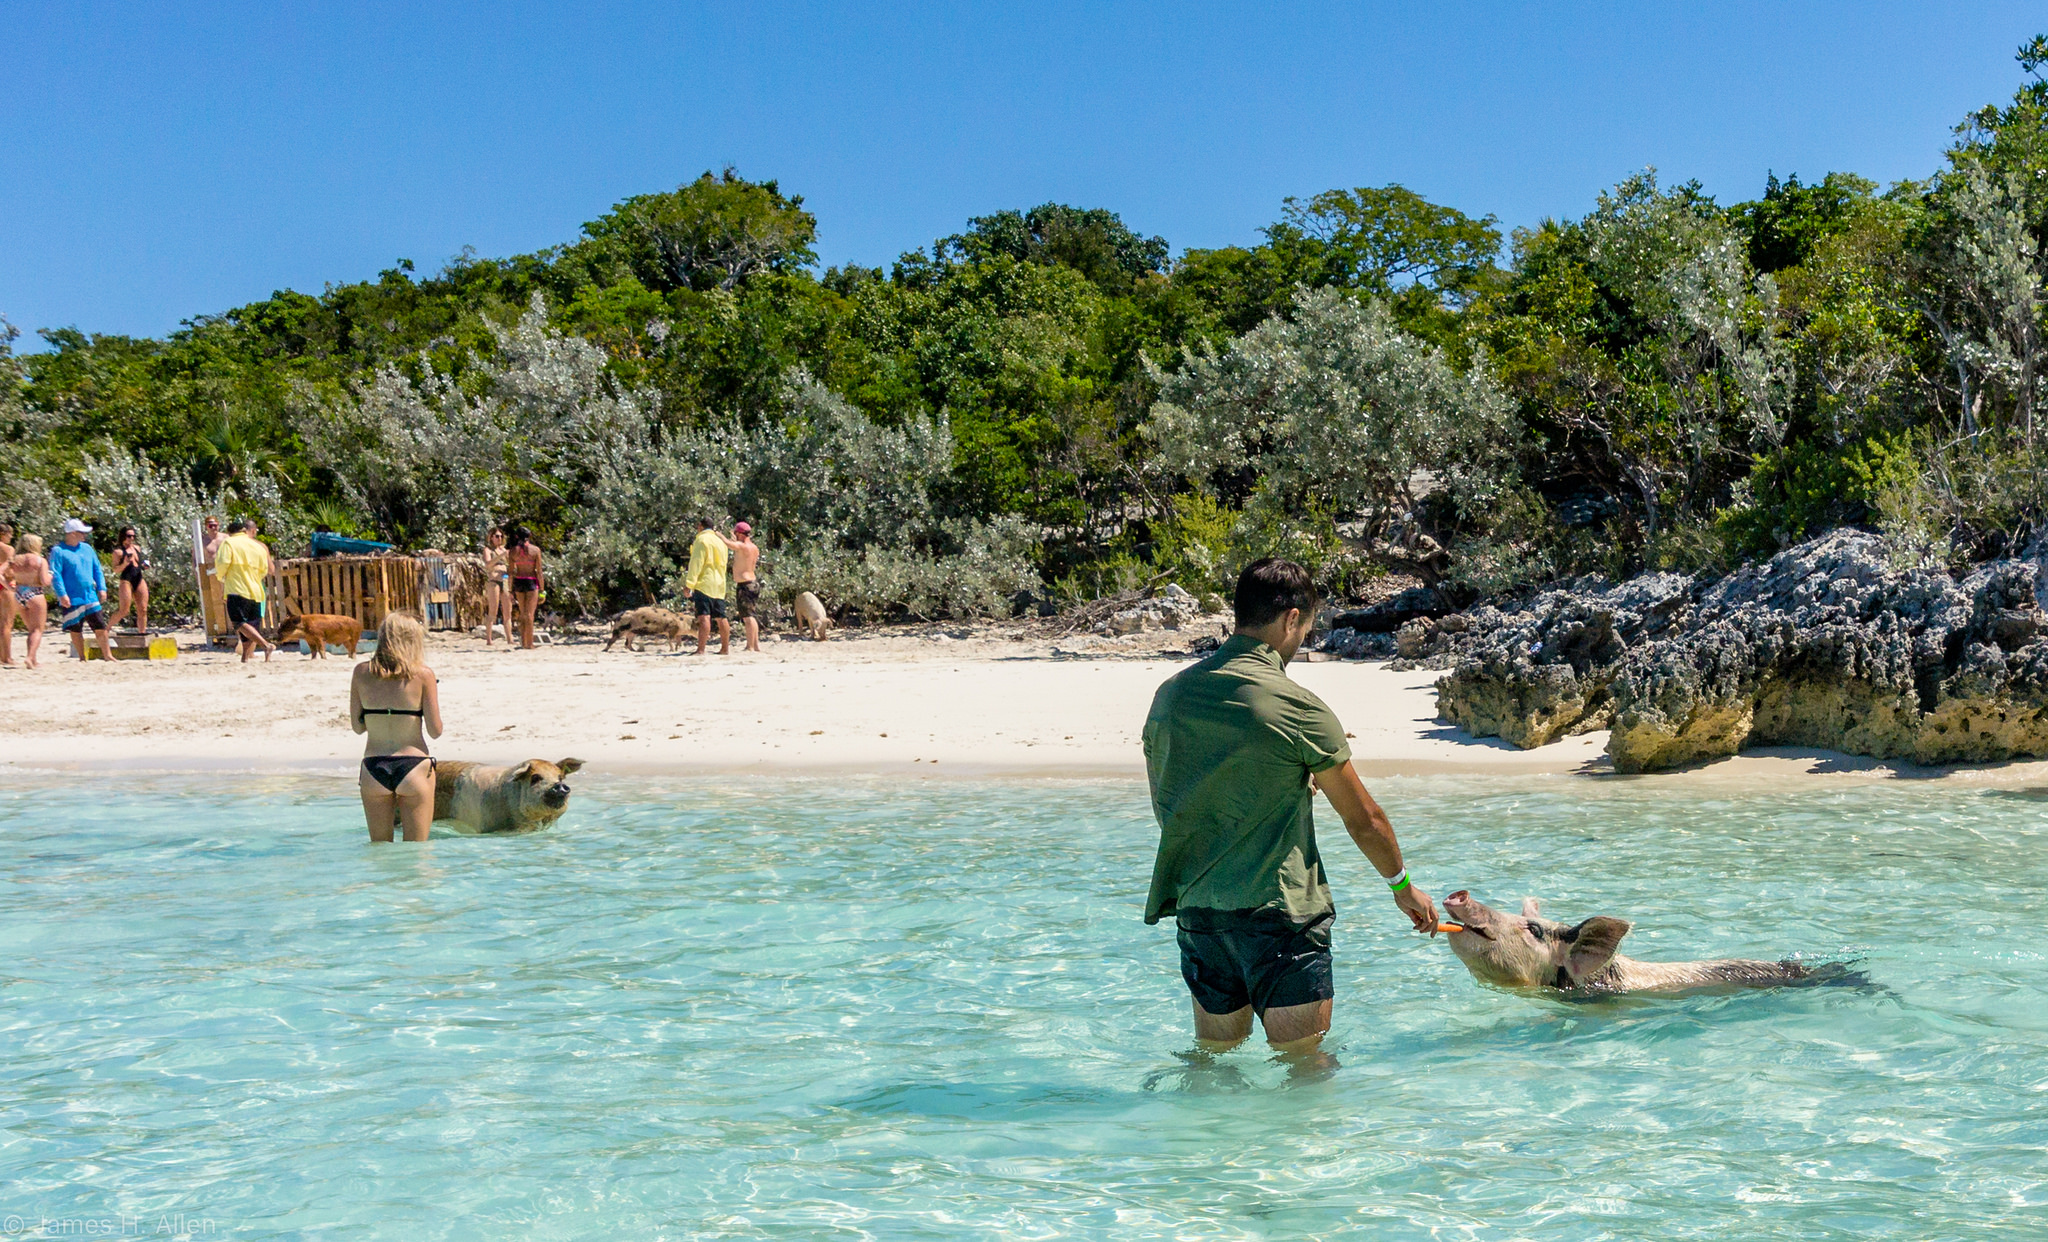 Pig Beach is famous for its swimming pigs. Image credit:    Jim Allen   /   Creative Commons